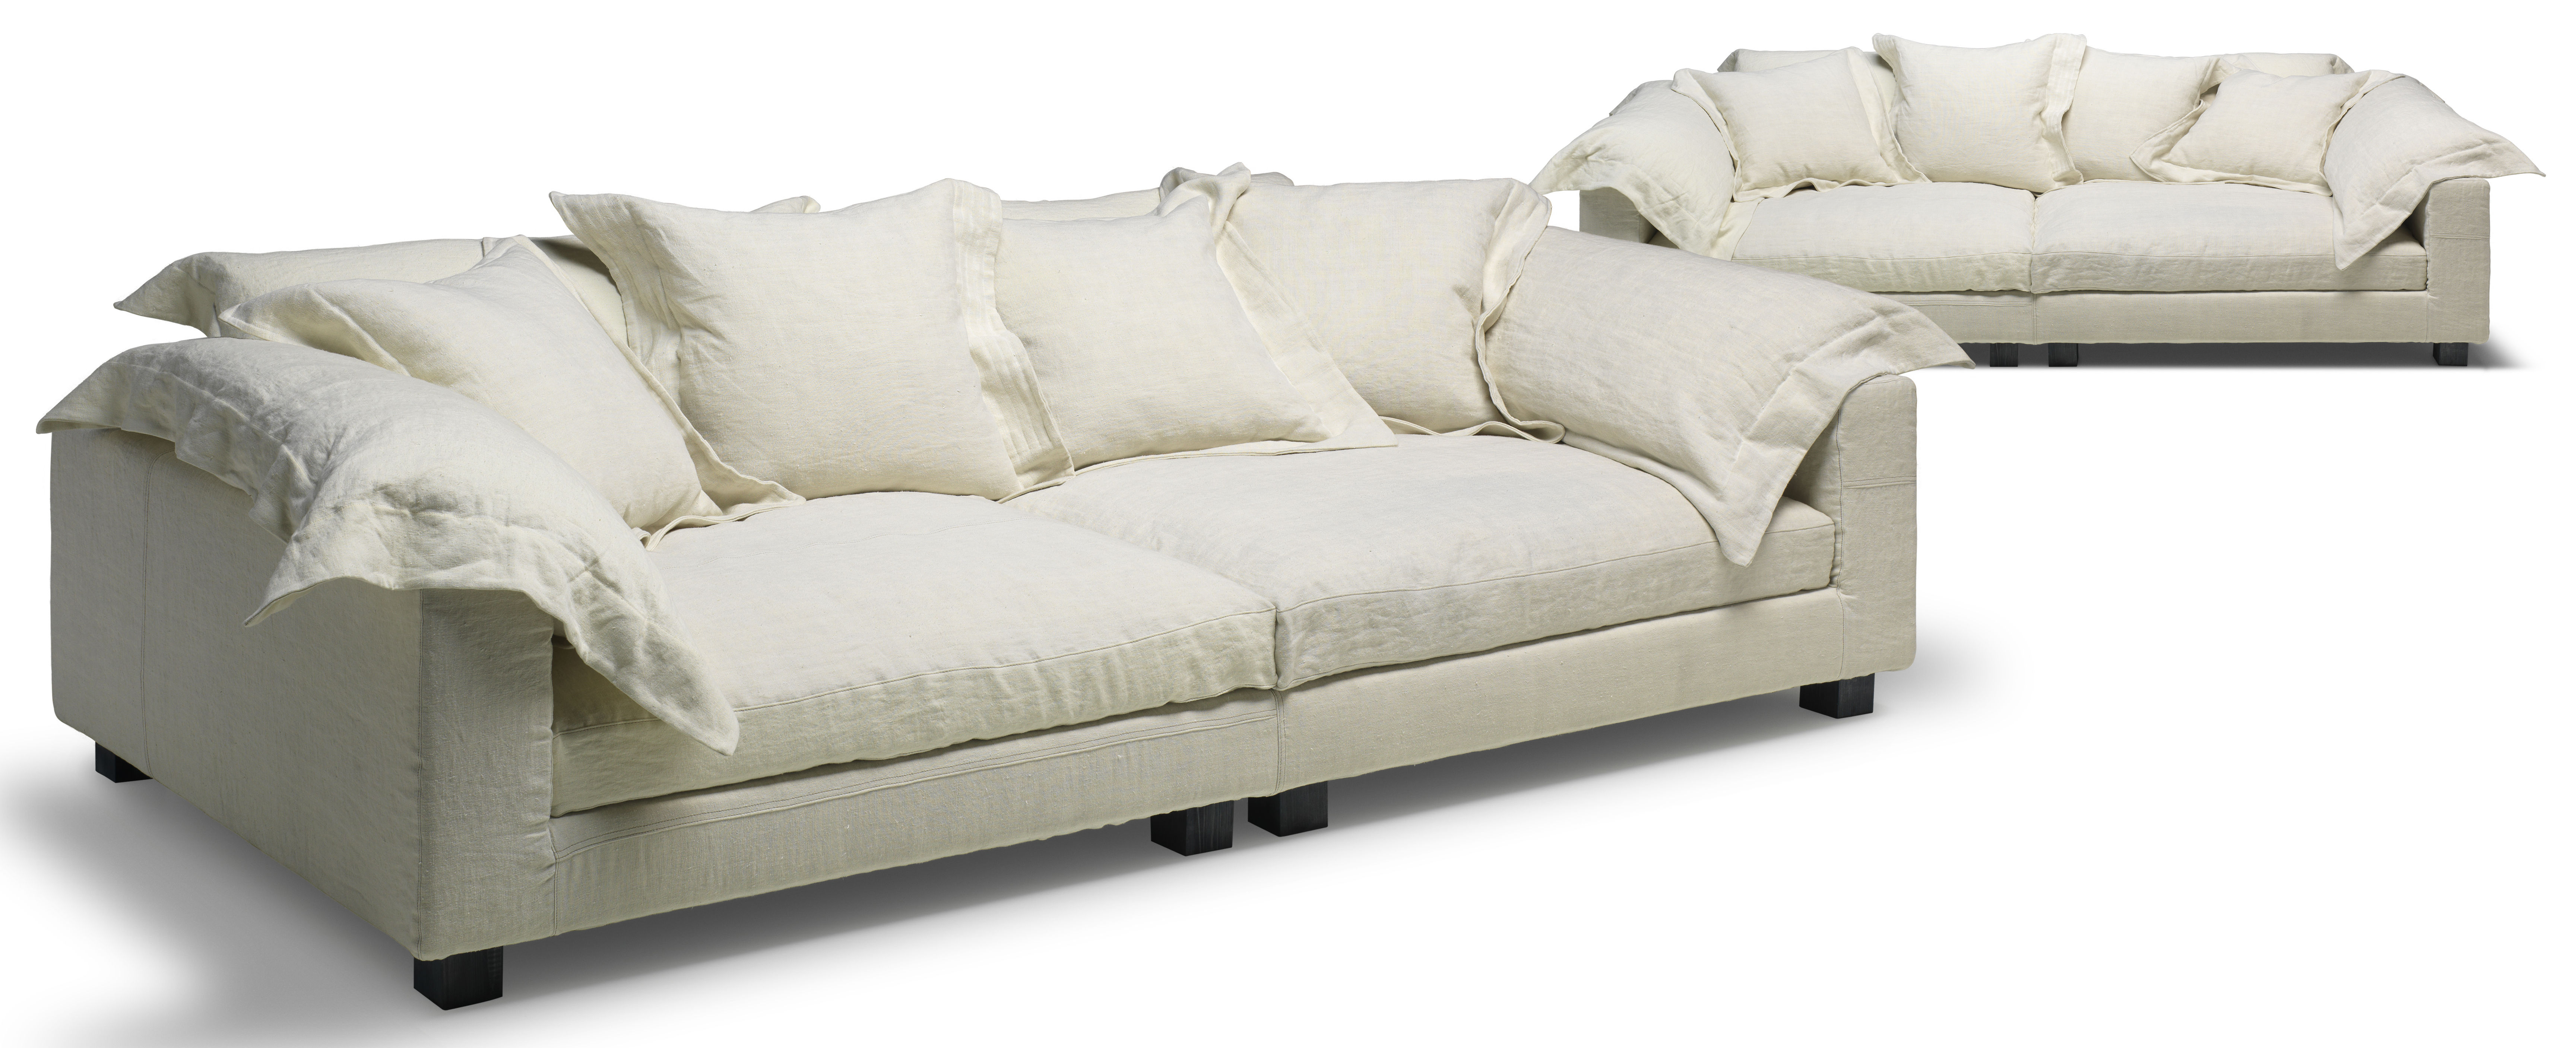 canap droit nebula nine l 220 x prof 110 cm blanc cass diesel with moroso. Black Bedroom Furniture Sets. Home Design Ideas